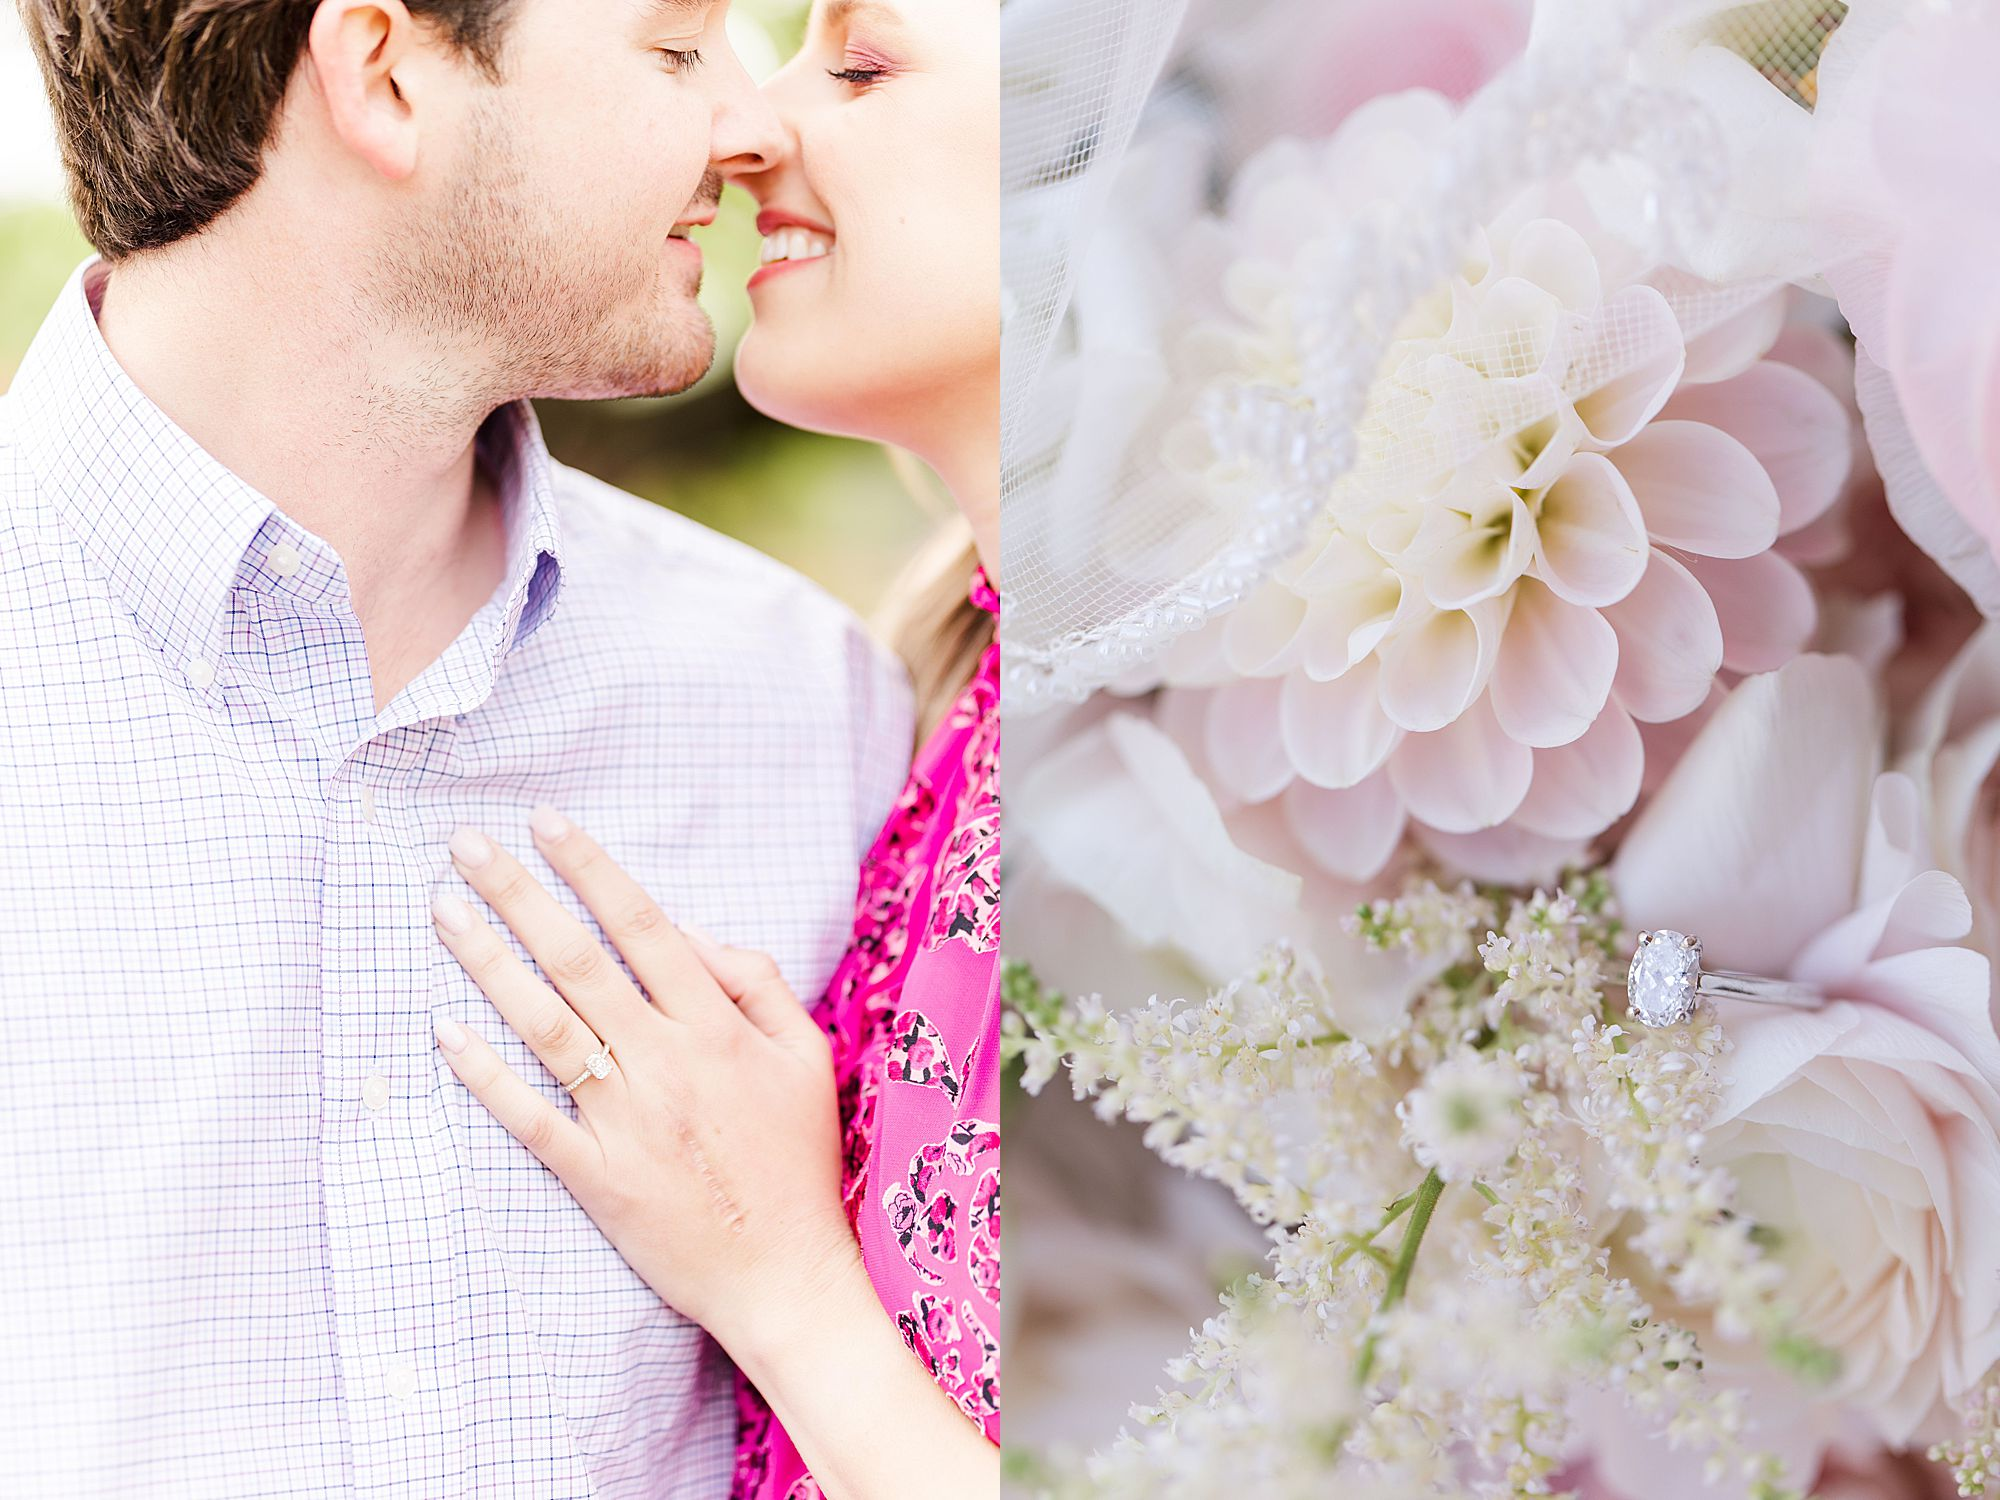 engagement ring photographed by Goodie and Smith Weddings